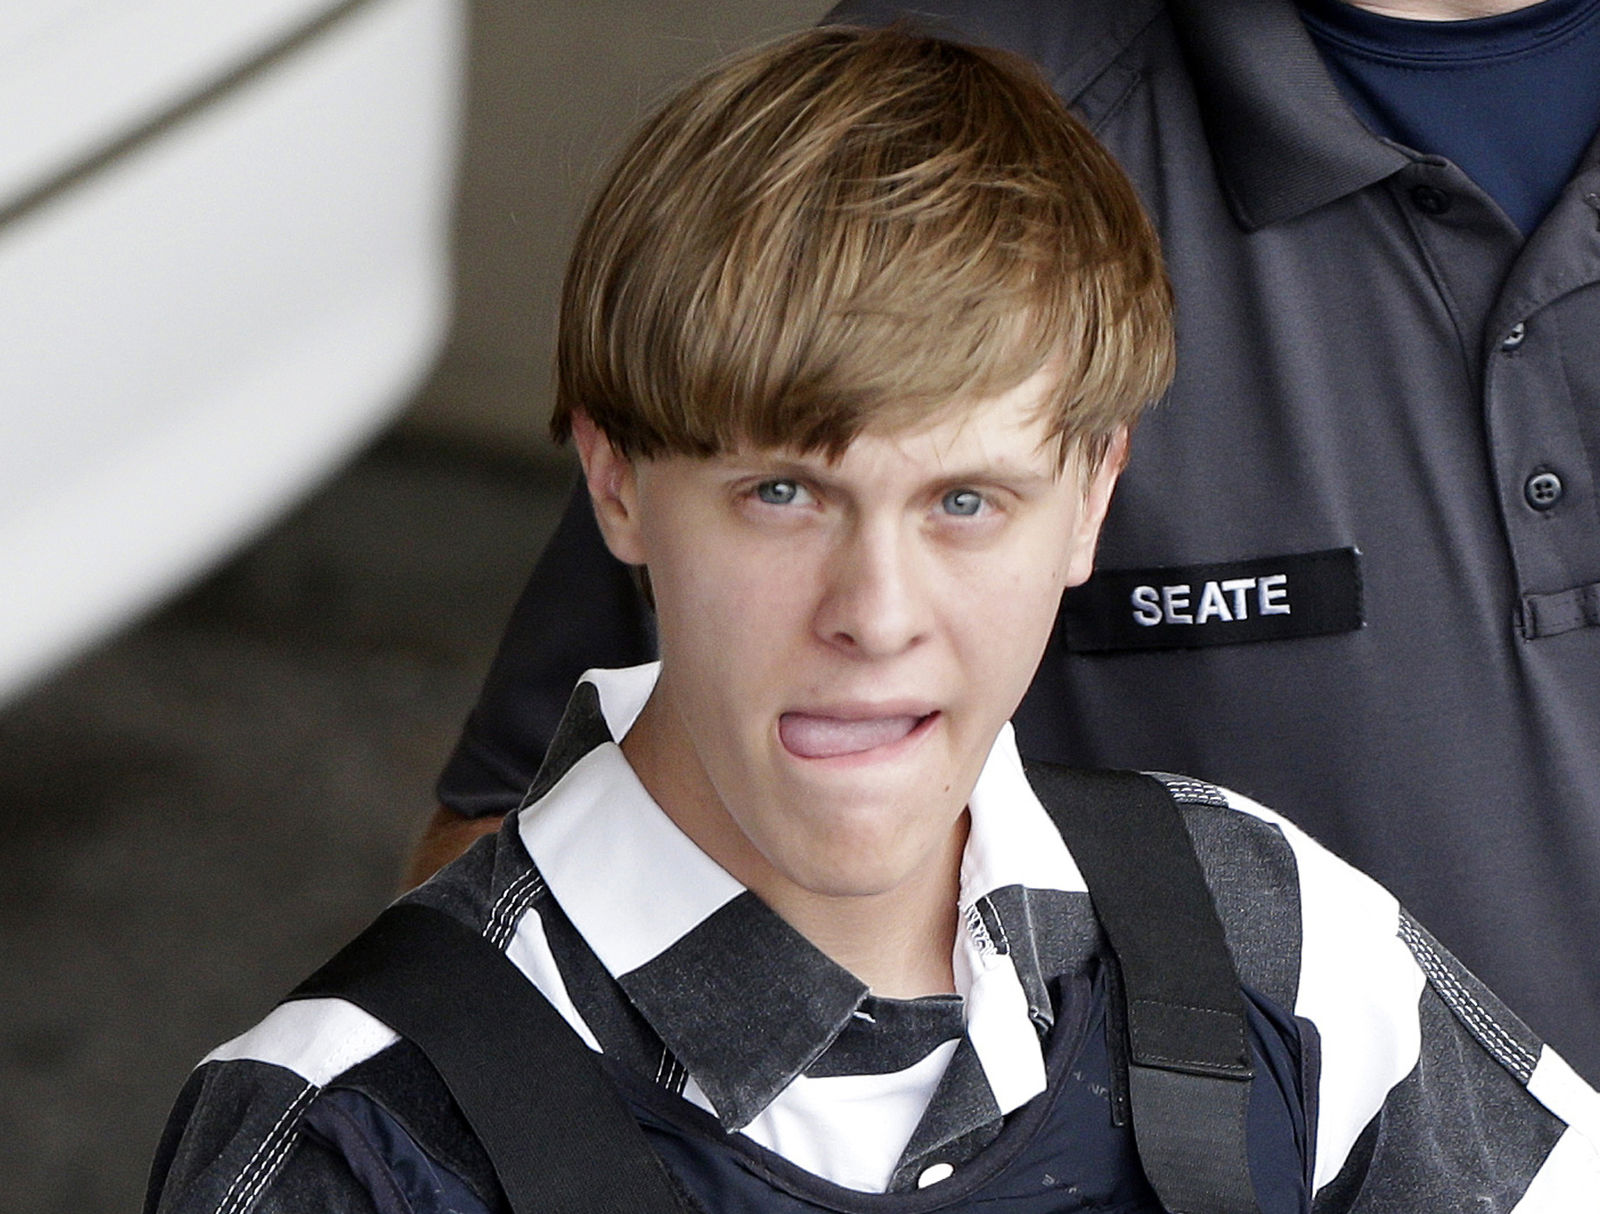 FILE - In this June 18, 2015, file photo, Charleston, S.C., shooting suspect Dylann Storm Roof is escorted from the Cleveland County Courthouse in Shelby, N.C. A federal appeals court has reinstated a lawsuit over a faulty background check that allowed Roof to buy the gun he used to kill nine people in a racist attack at a South Carolina church. A three-judge panel of the 4th U.S. Circuit Court of Appeals on Friday, Aug. 30, 2019, reversed a lower court judge who threw out the lawsuit brought by survivors and relatives of people killed in the 2015 massacre at Charleston's AME Emanuel Church. (AP Photo/Chuck Burton, File)